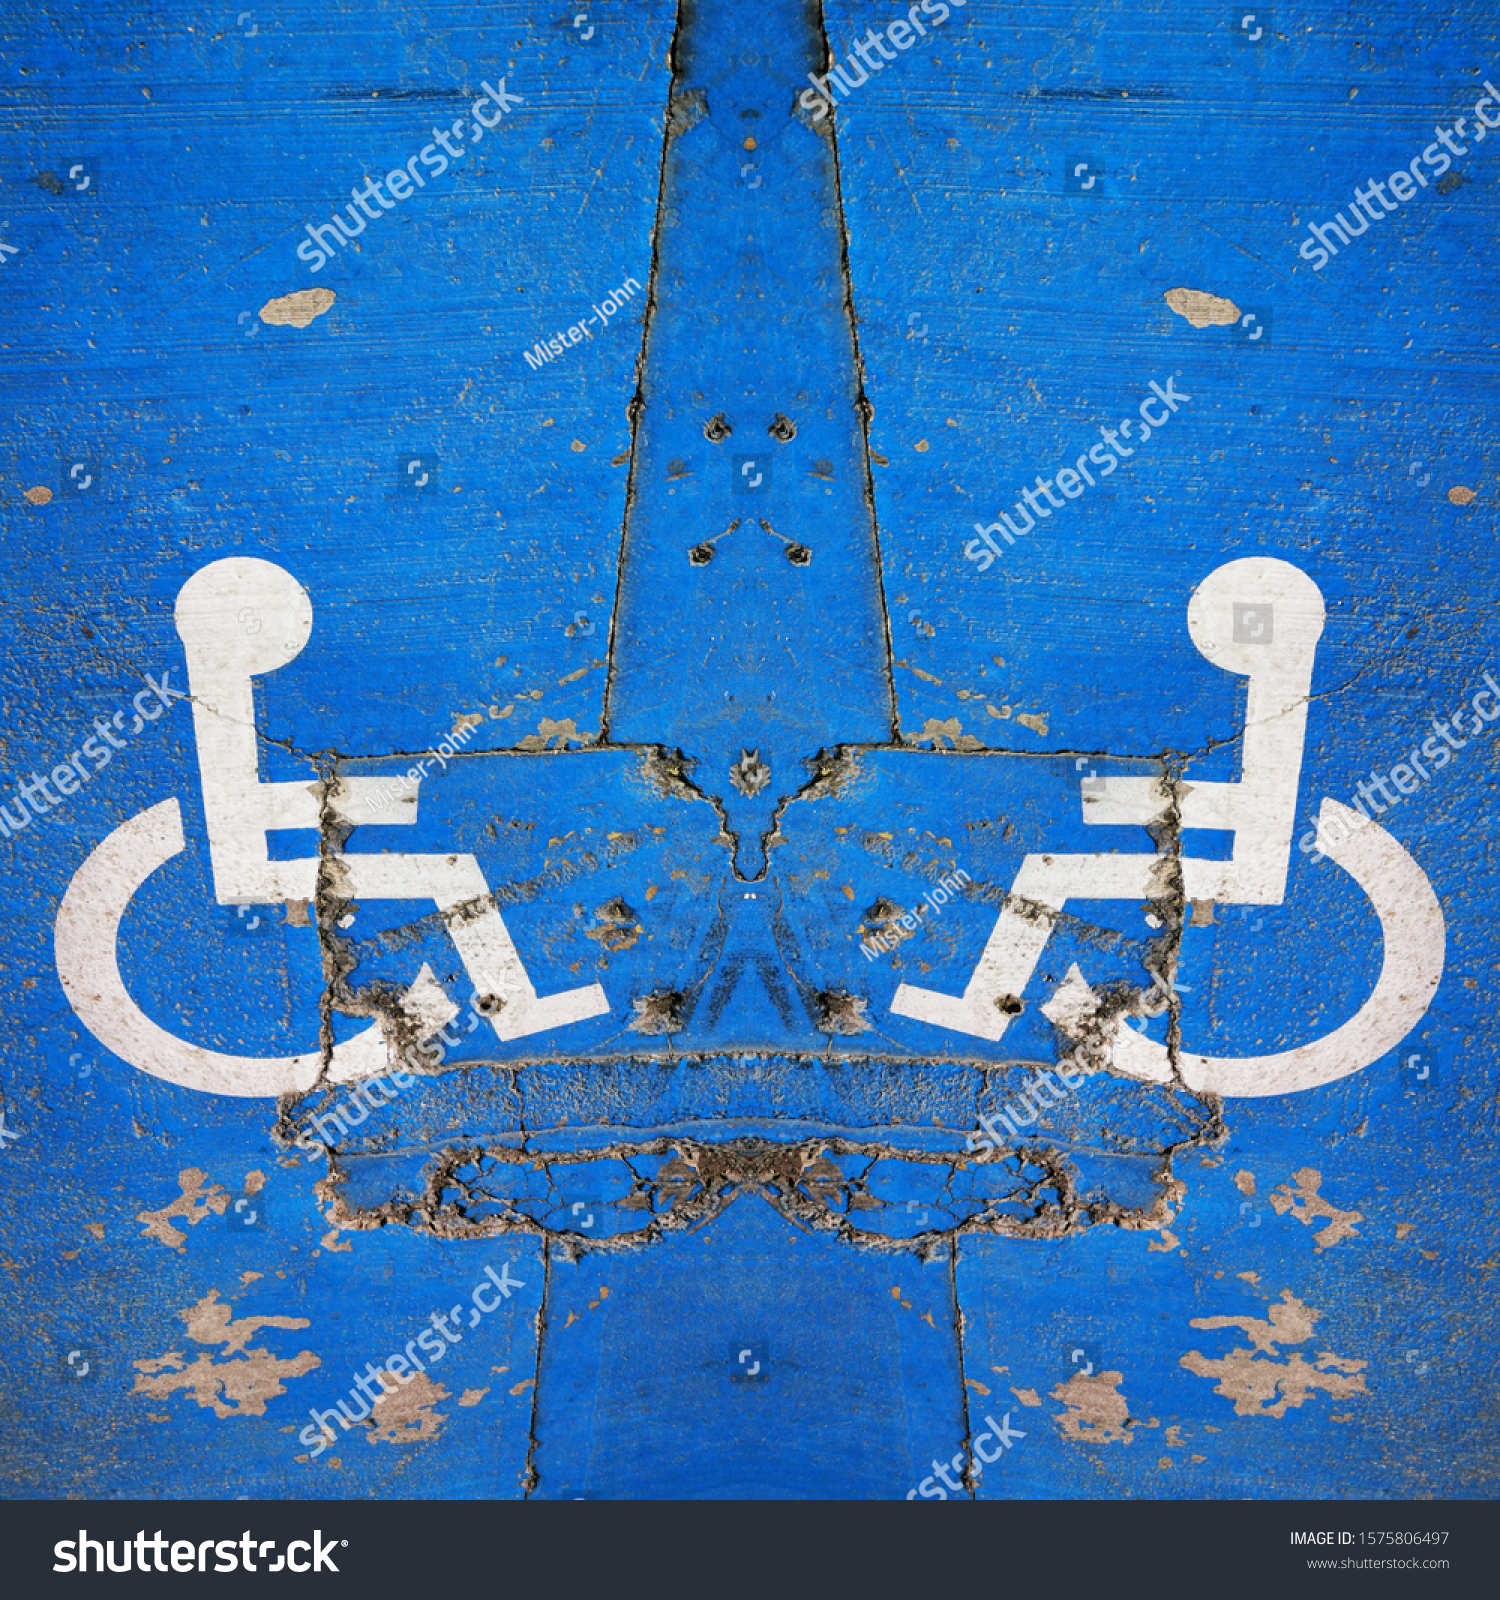 traditional universal icon for disabled access and parking zone white on blue painted surface #1575806497